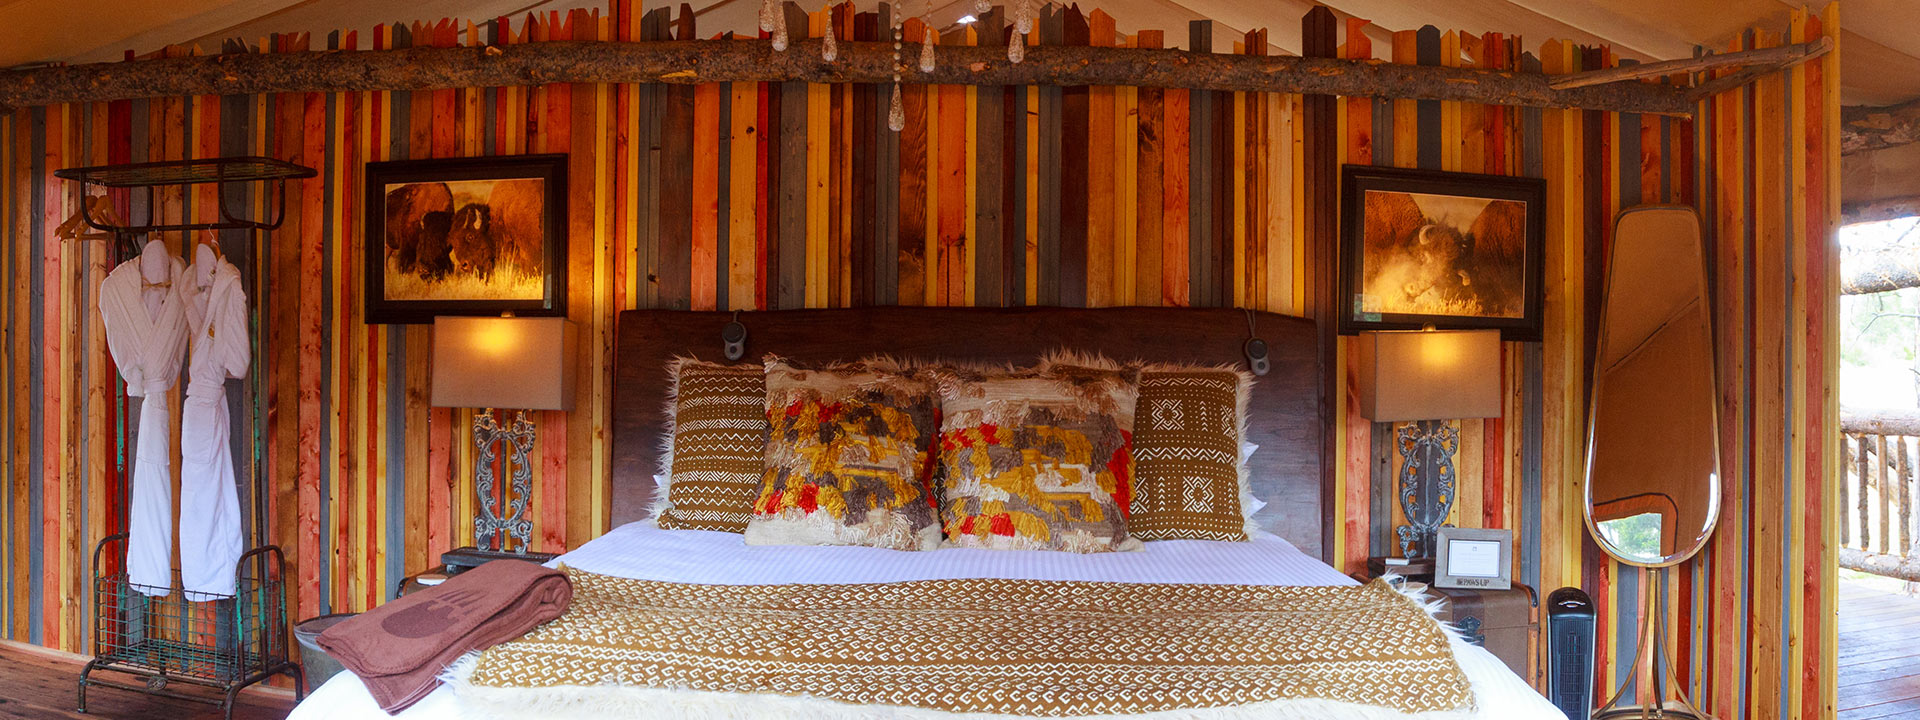 Glamping In Luxury Tents